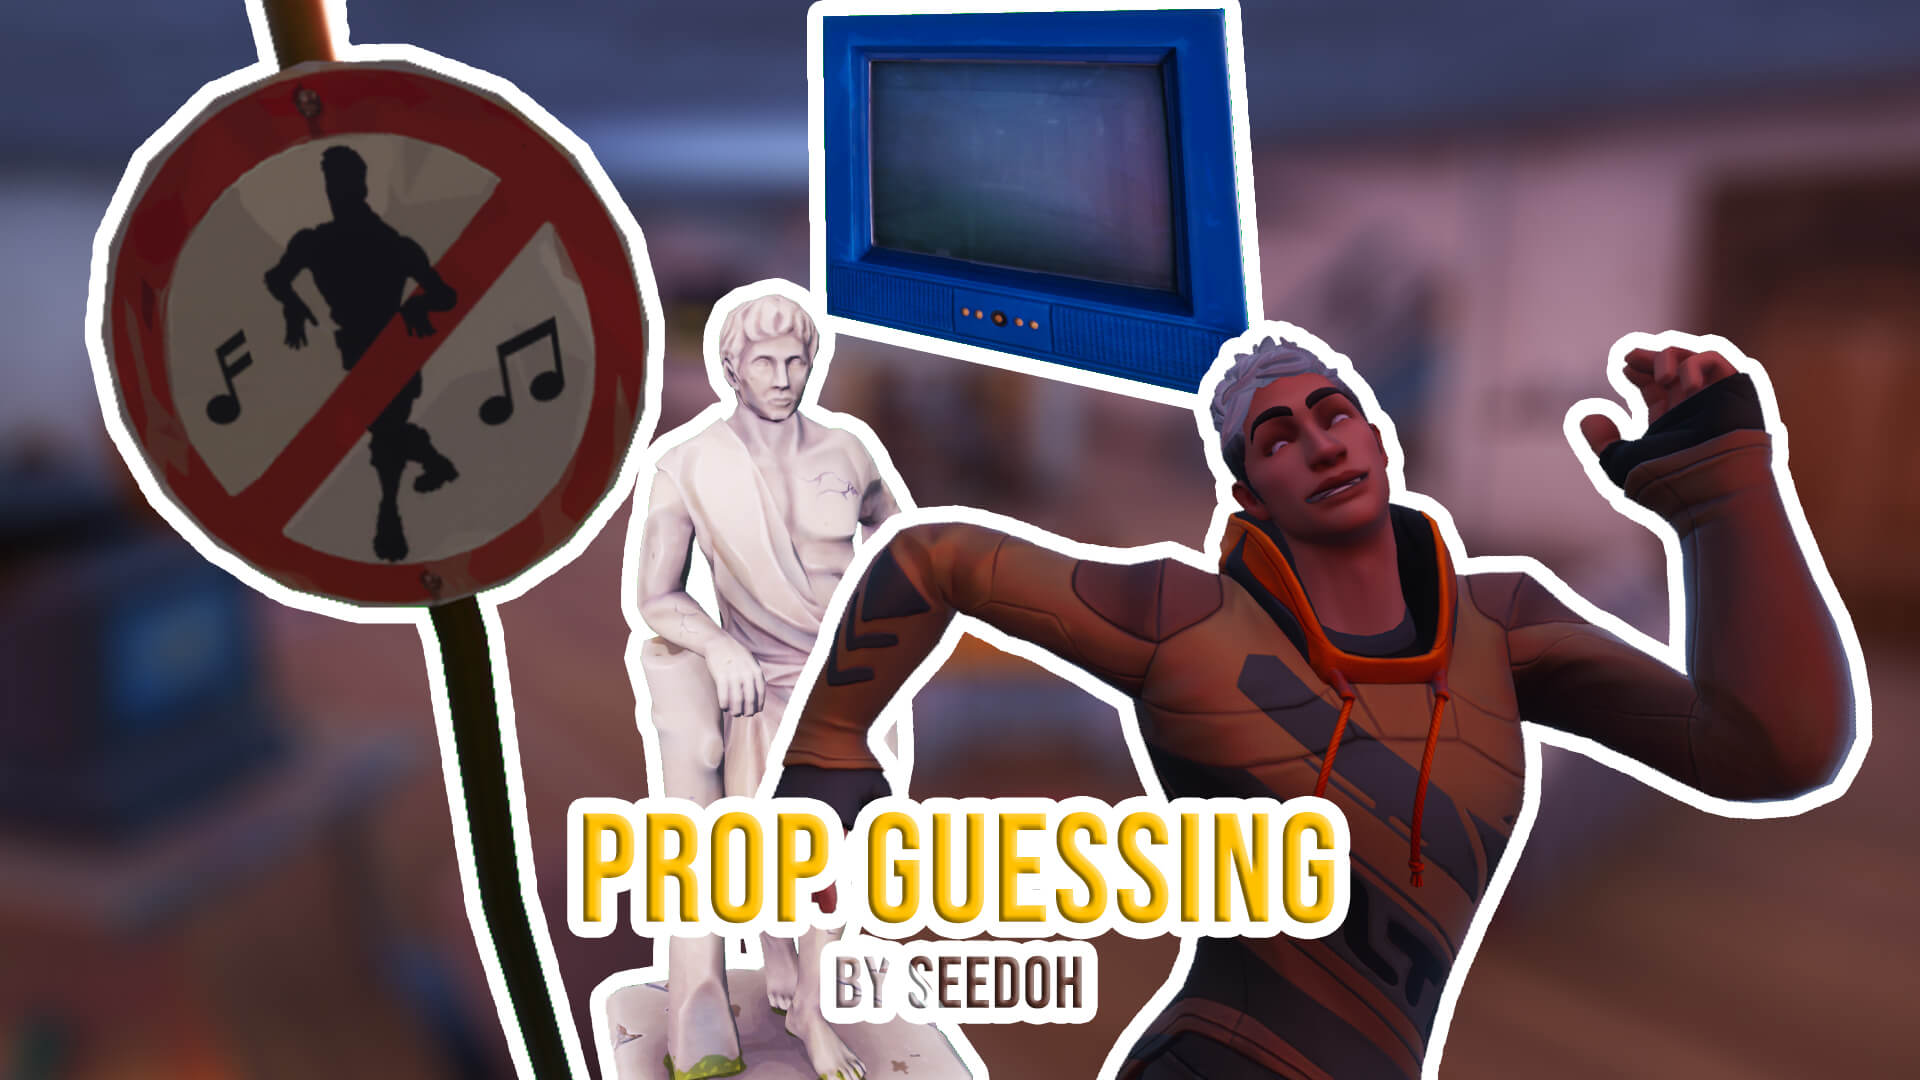 PROP GUESSING